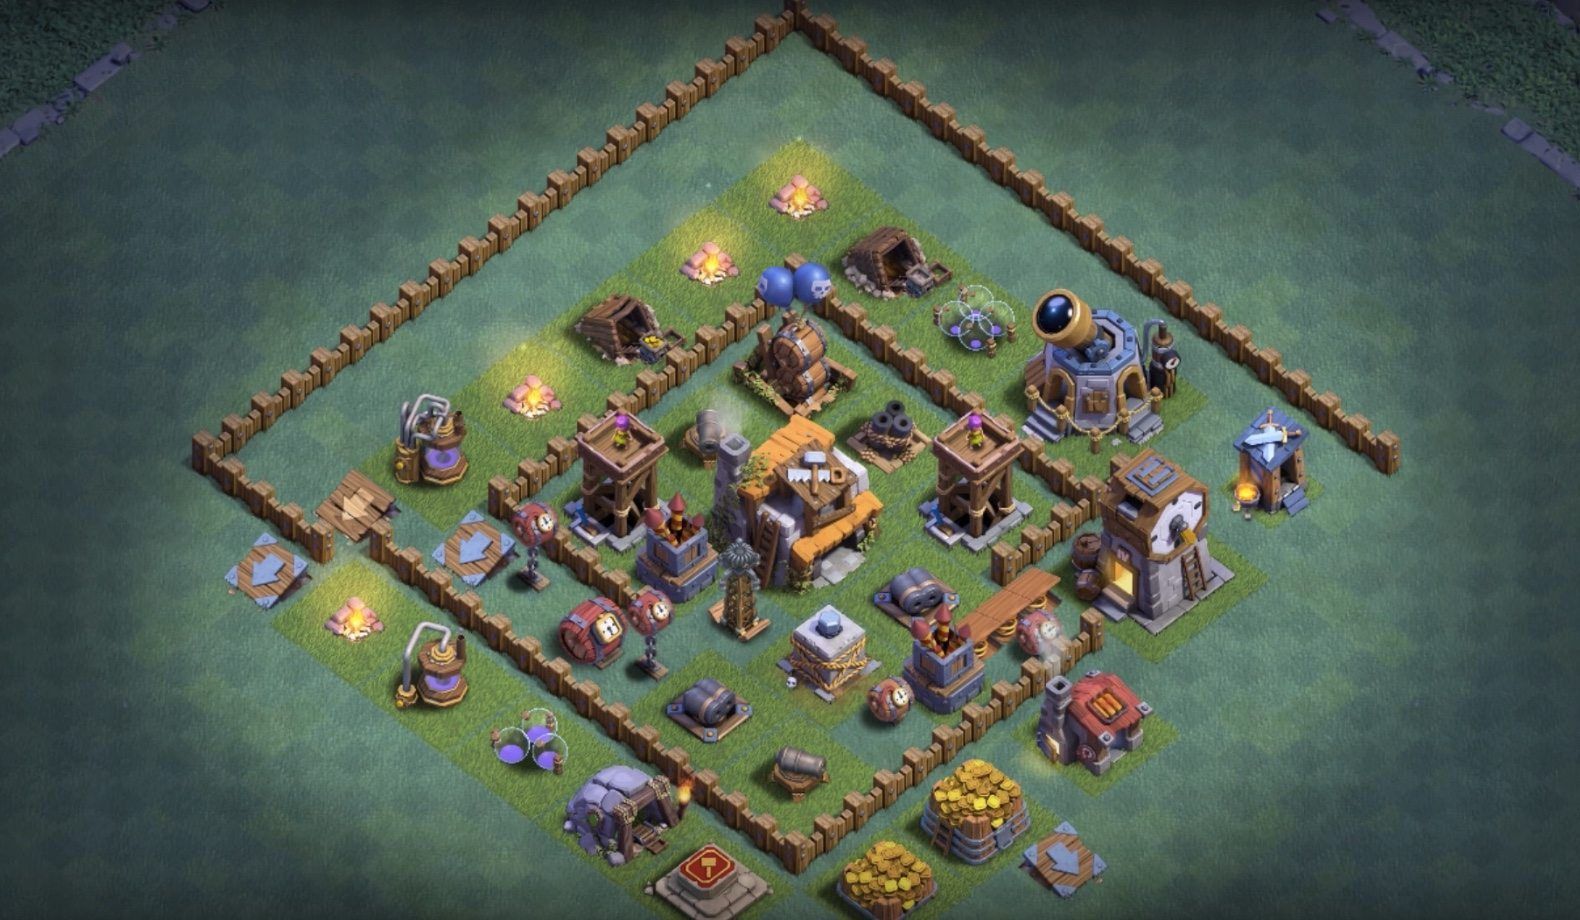 Clash Of Clans Builders Hall 5 Base Bh5 Base Layouts For Builder Hall 5 Anti 2 Star Clash Of Clans Clan Layout